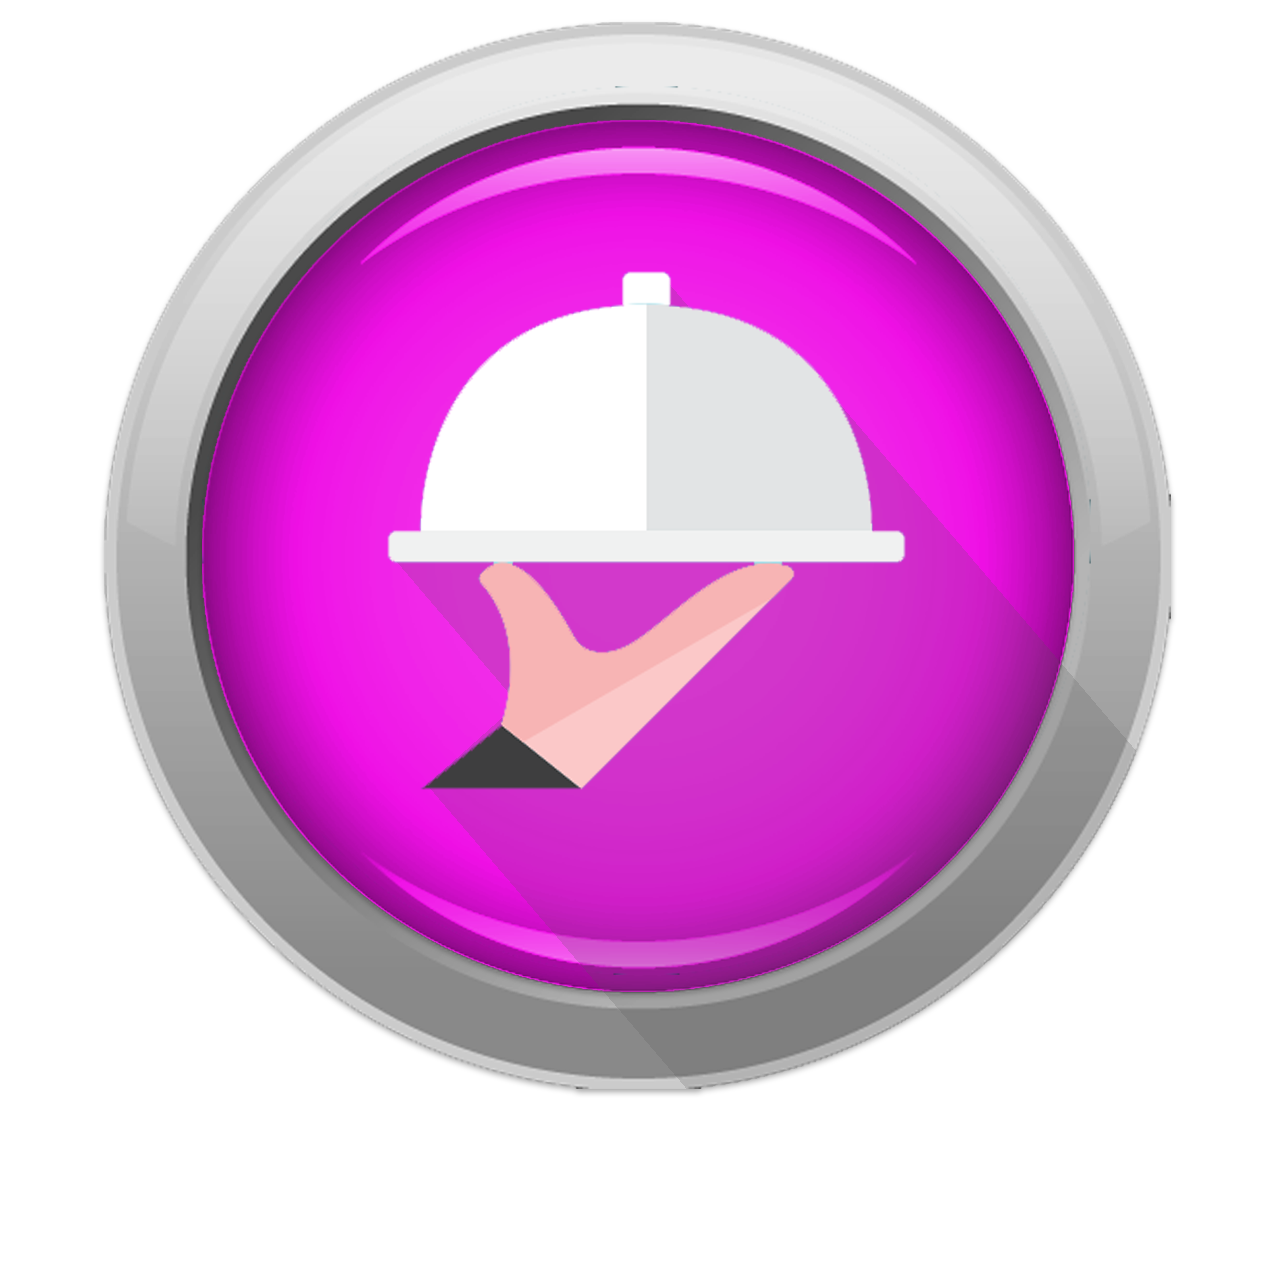 button_Brand-1-edible.png